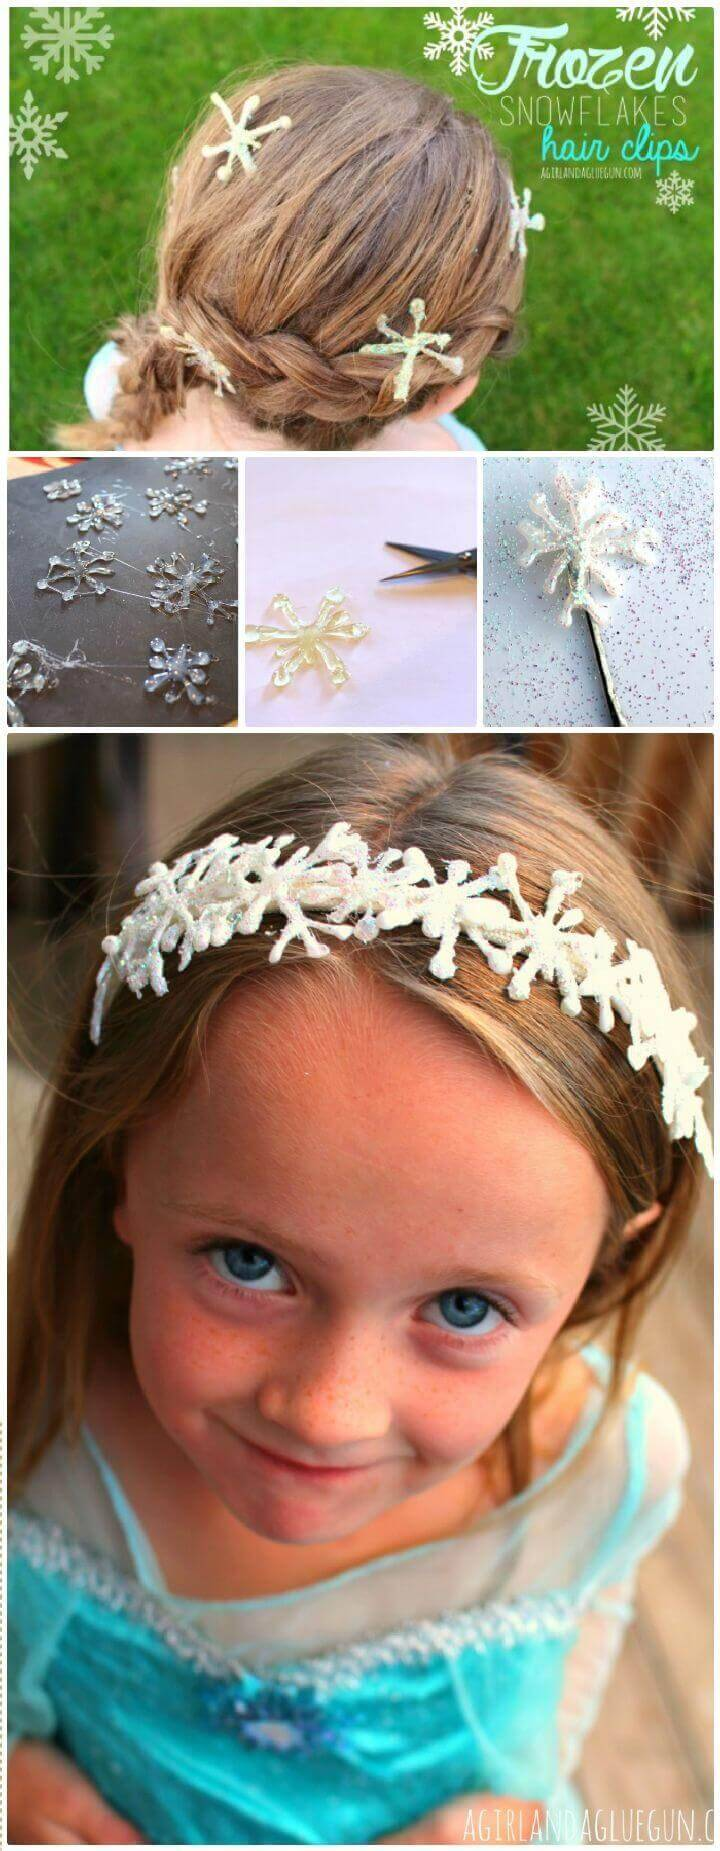 DIY Frozen Themed Snowflake Hair Clips